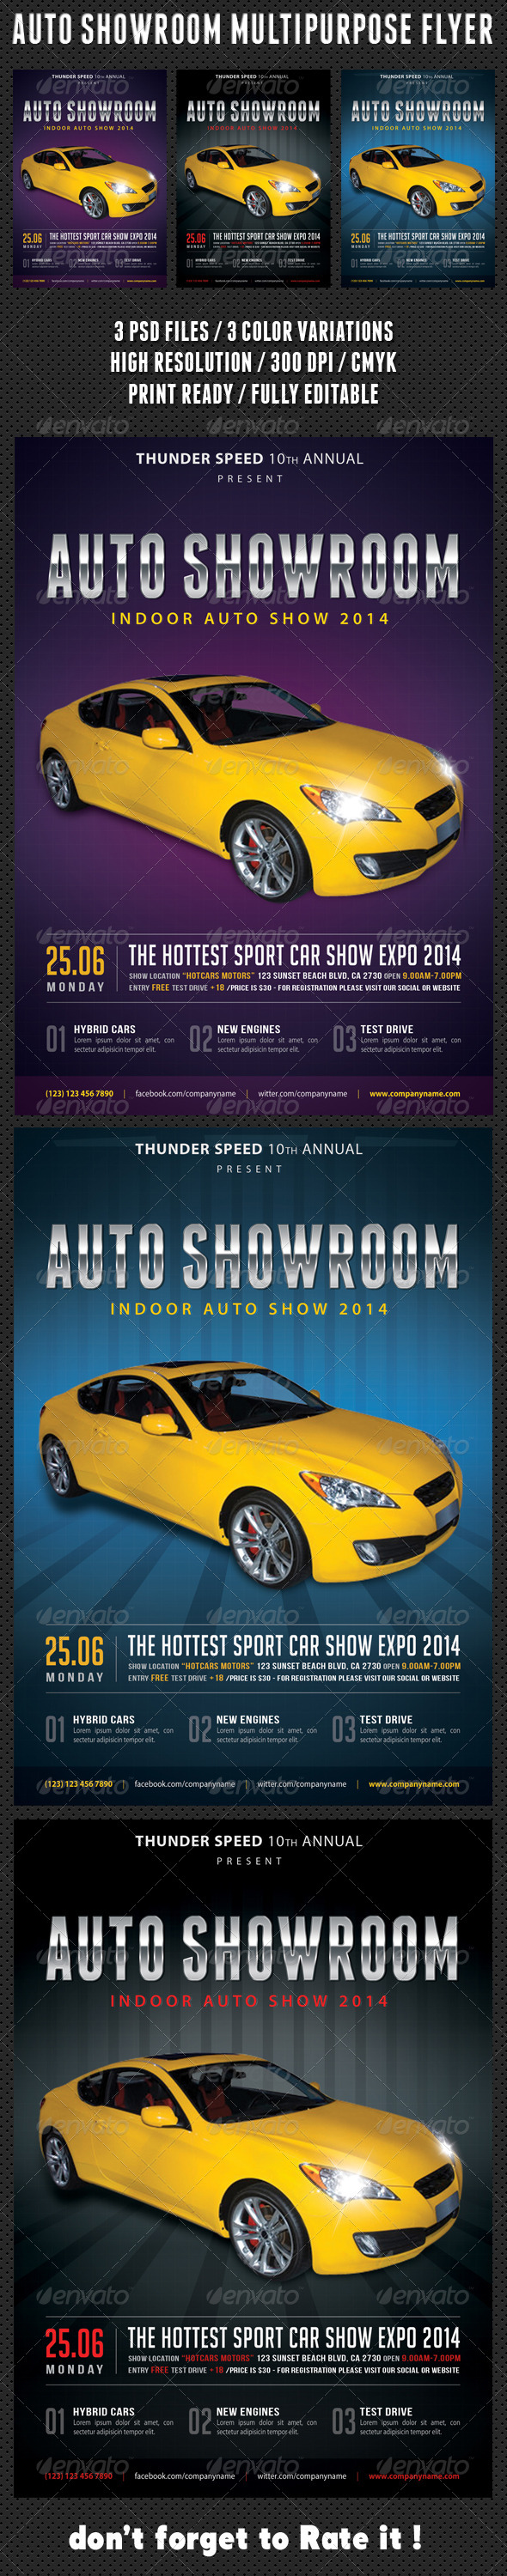 GraphicRiver Auto Showroom Multipurpose Flyer 01 8054965